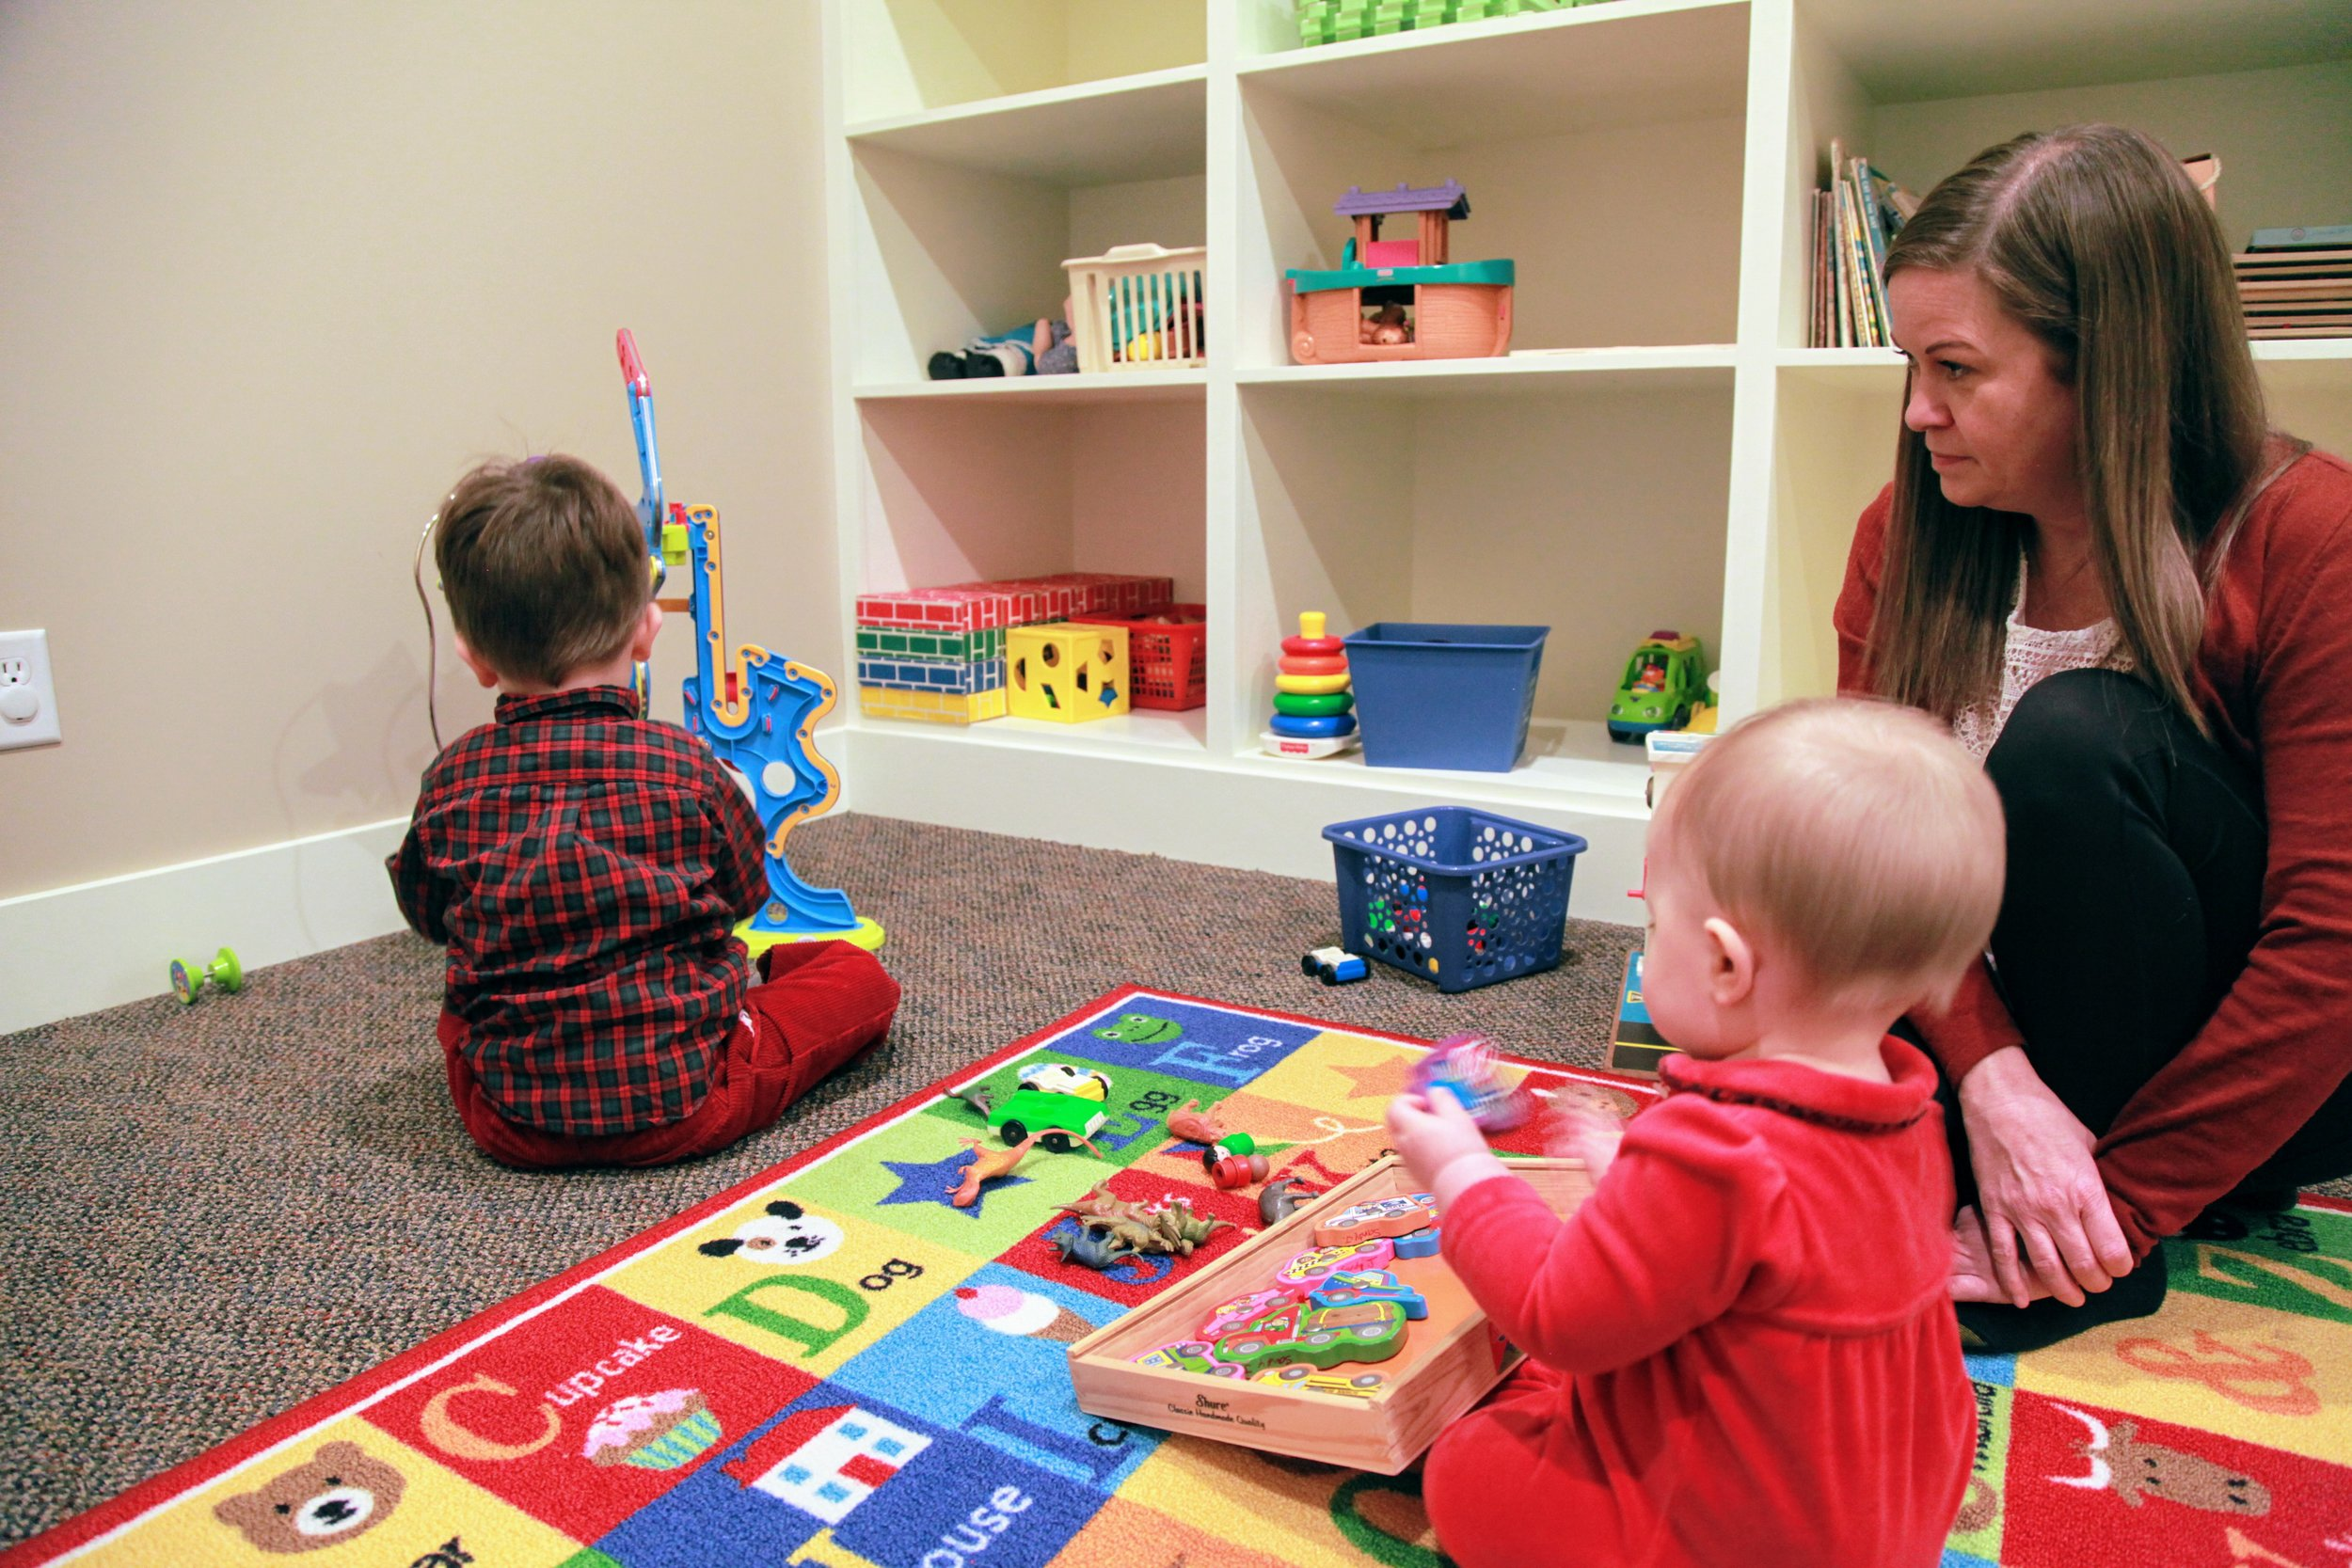 Children's Room - We provide care for infants and young children not yet ready for Sunday School.